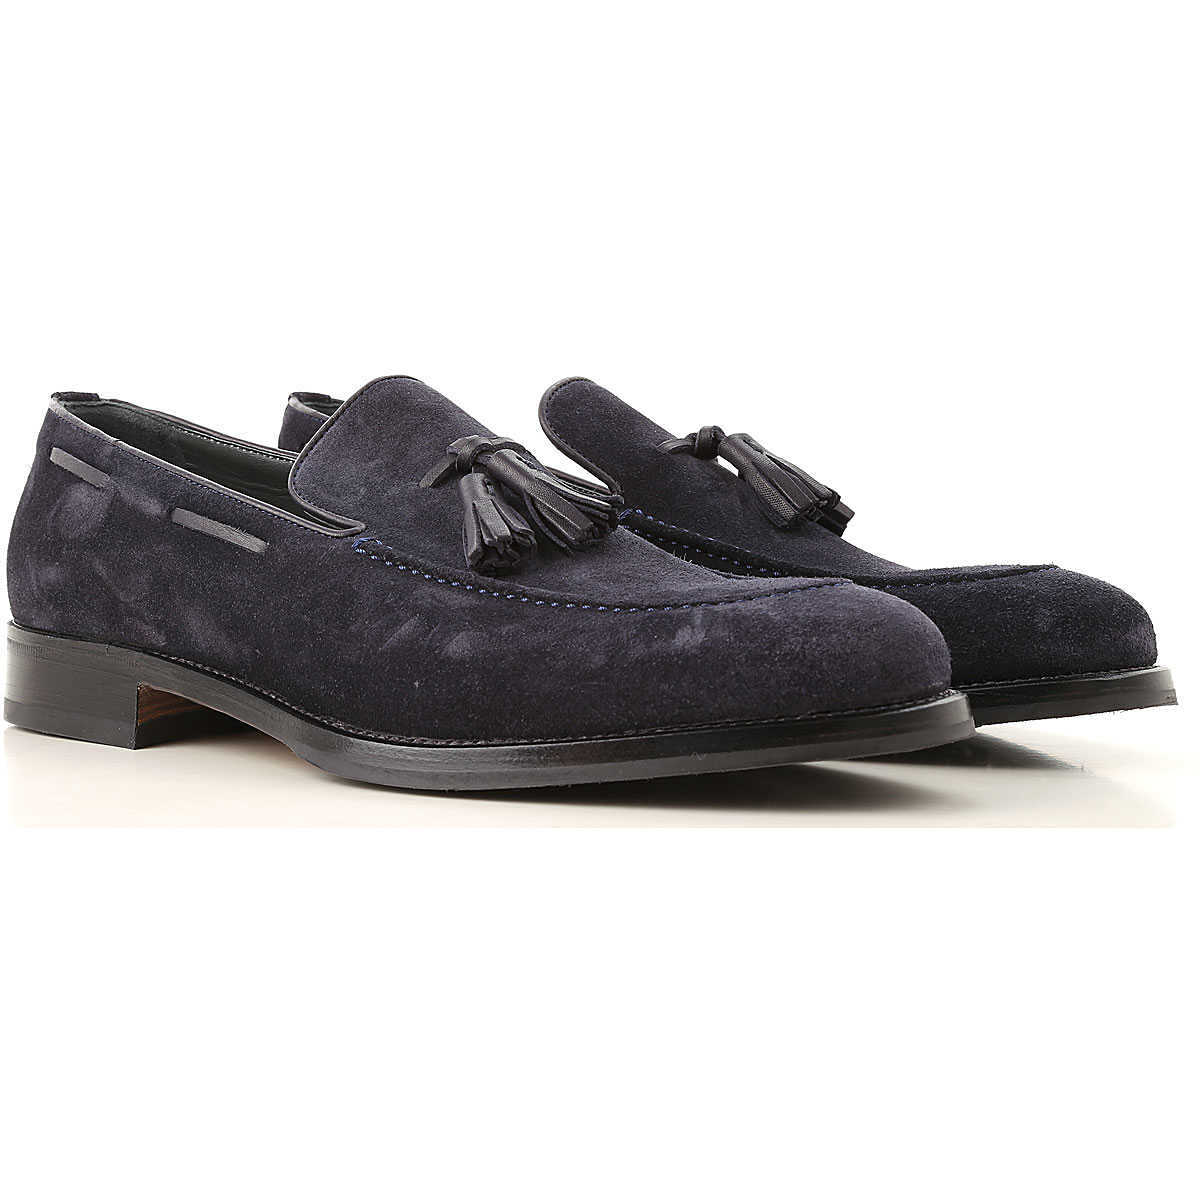 Moreschi Loafers for Men Blue Canada - GOOFASH - Mens LOAFERS